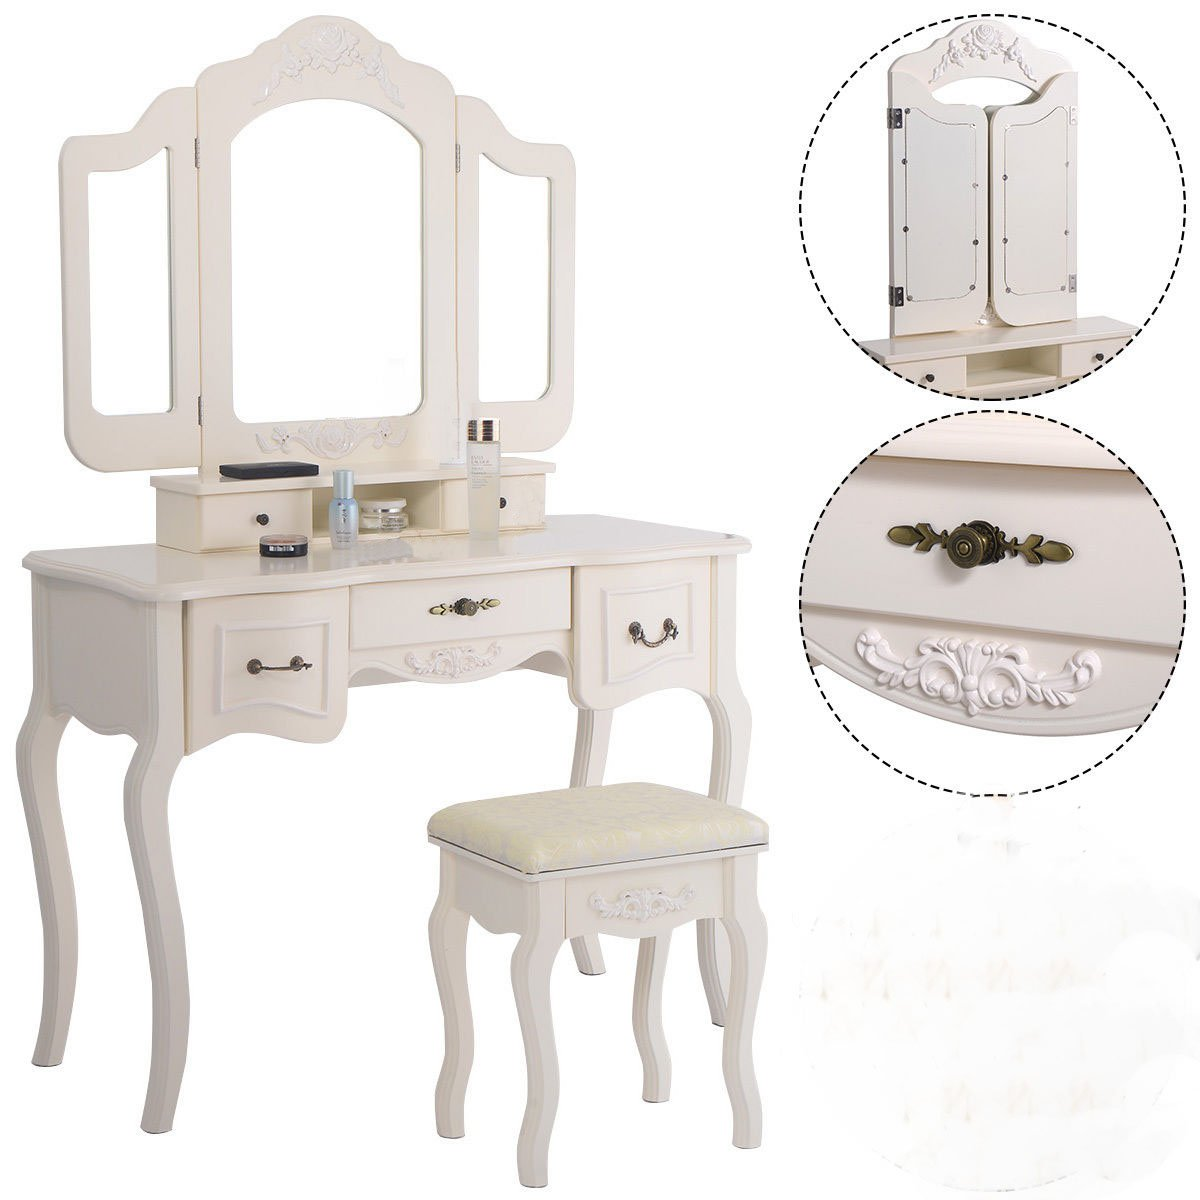 Tri Folding Vintage White Vanity Makeup Dressing Table Set 5 Drawers &stool 0